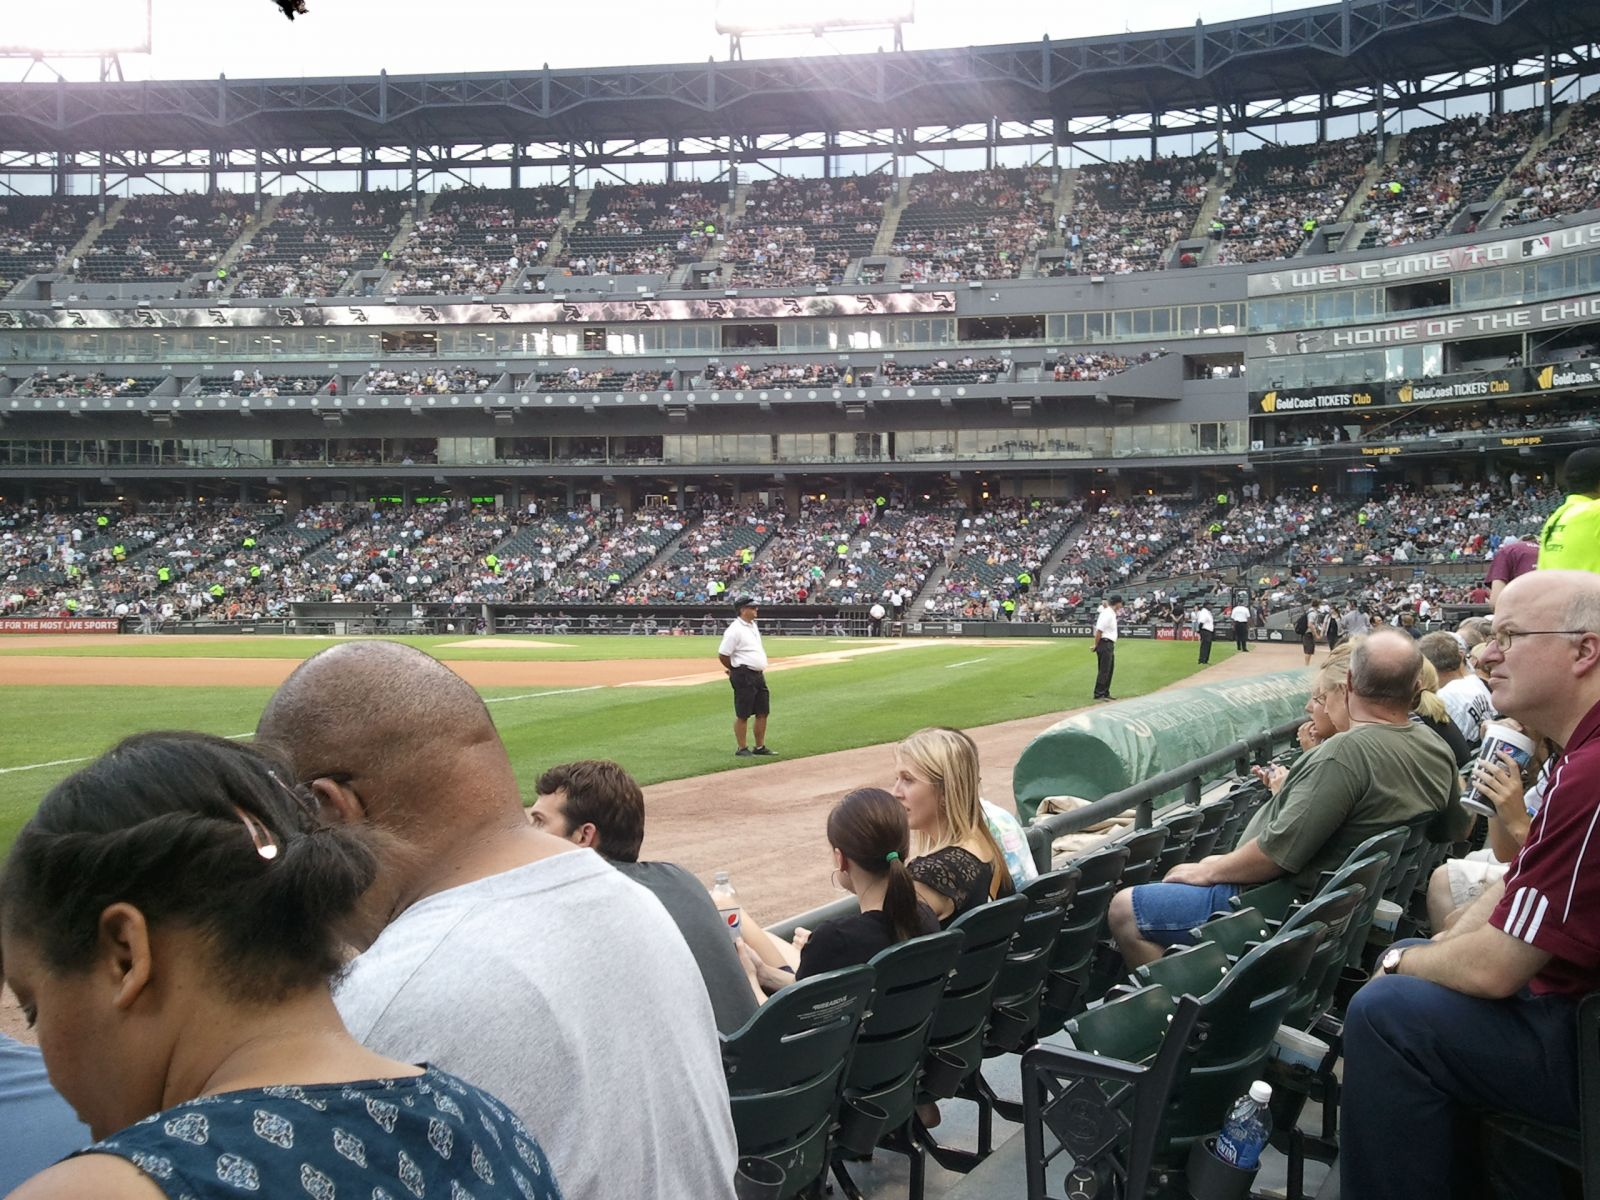 Seat View for Guaranteed Rate Field Section 148, Row 2, Seat 1